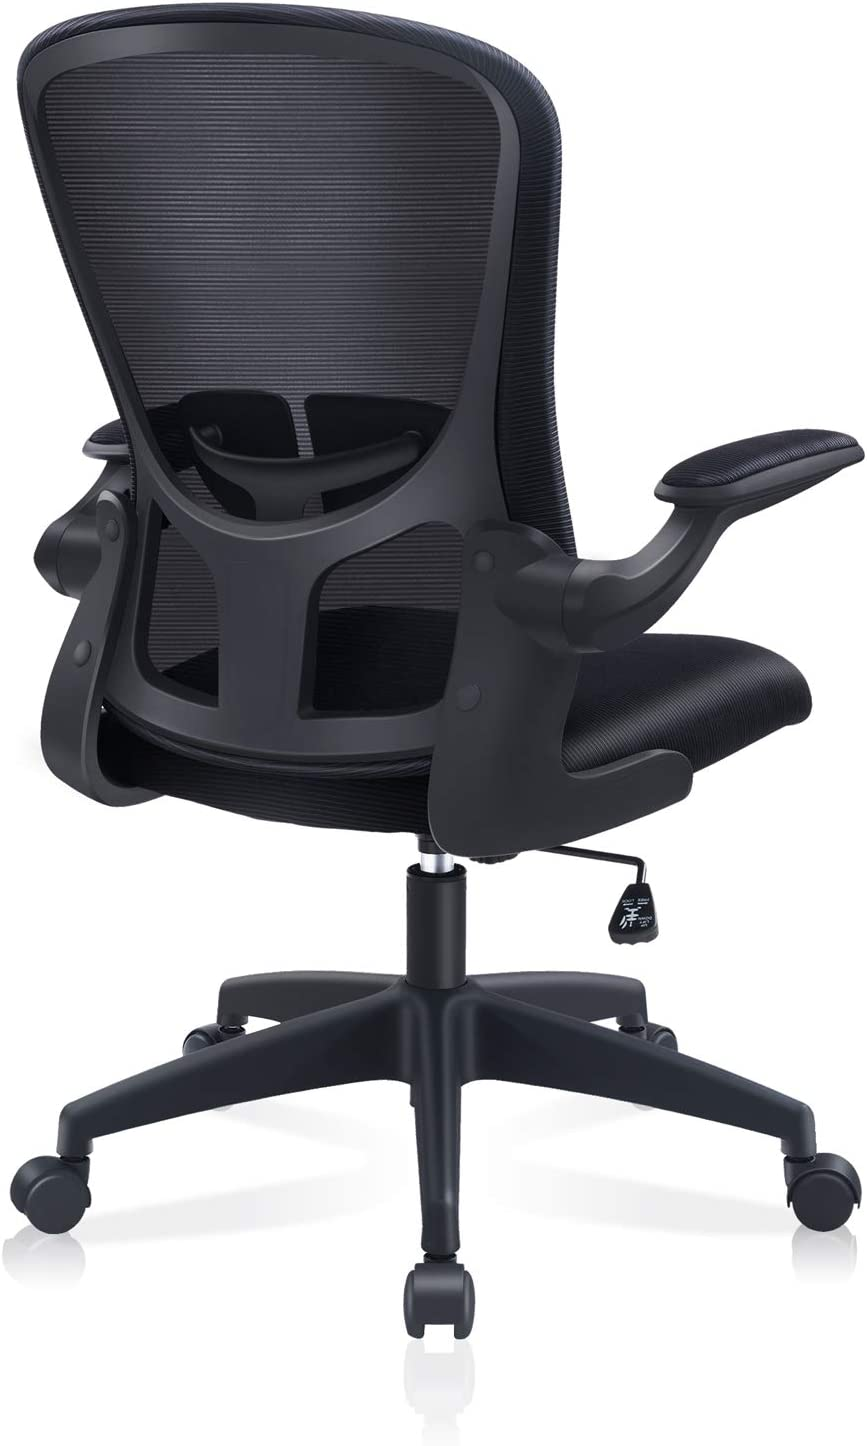 Office Chair, FelixKing Ergonomic Desk Chair with Adjustable Height, Swivel Computer Mesh Chair with Lumbar Support and Flip-up Arms, Backrest with Breathable Mesh (Black)